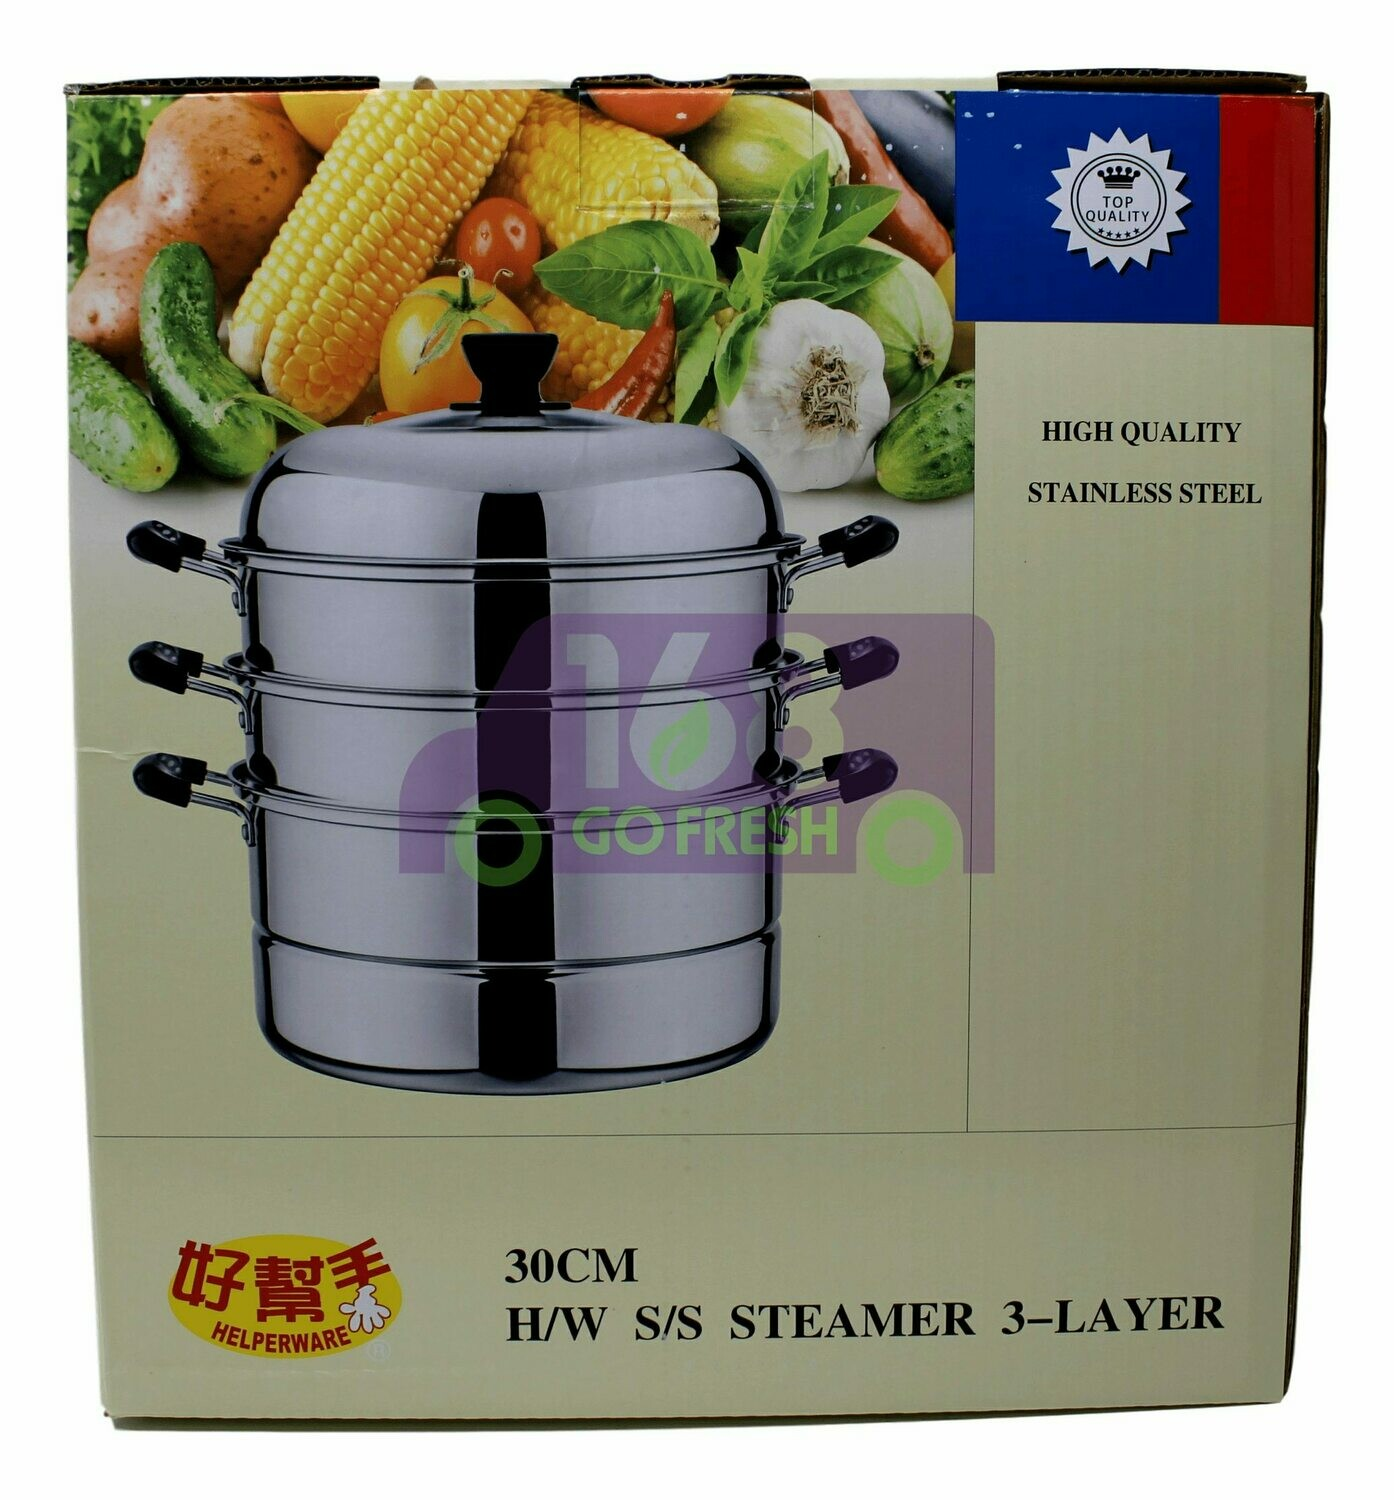 30 cm stainless steel 3-layered steamer 好帮手30cm 三层不锈钢蒸锅